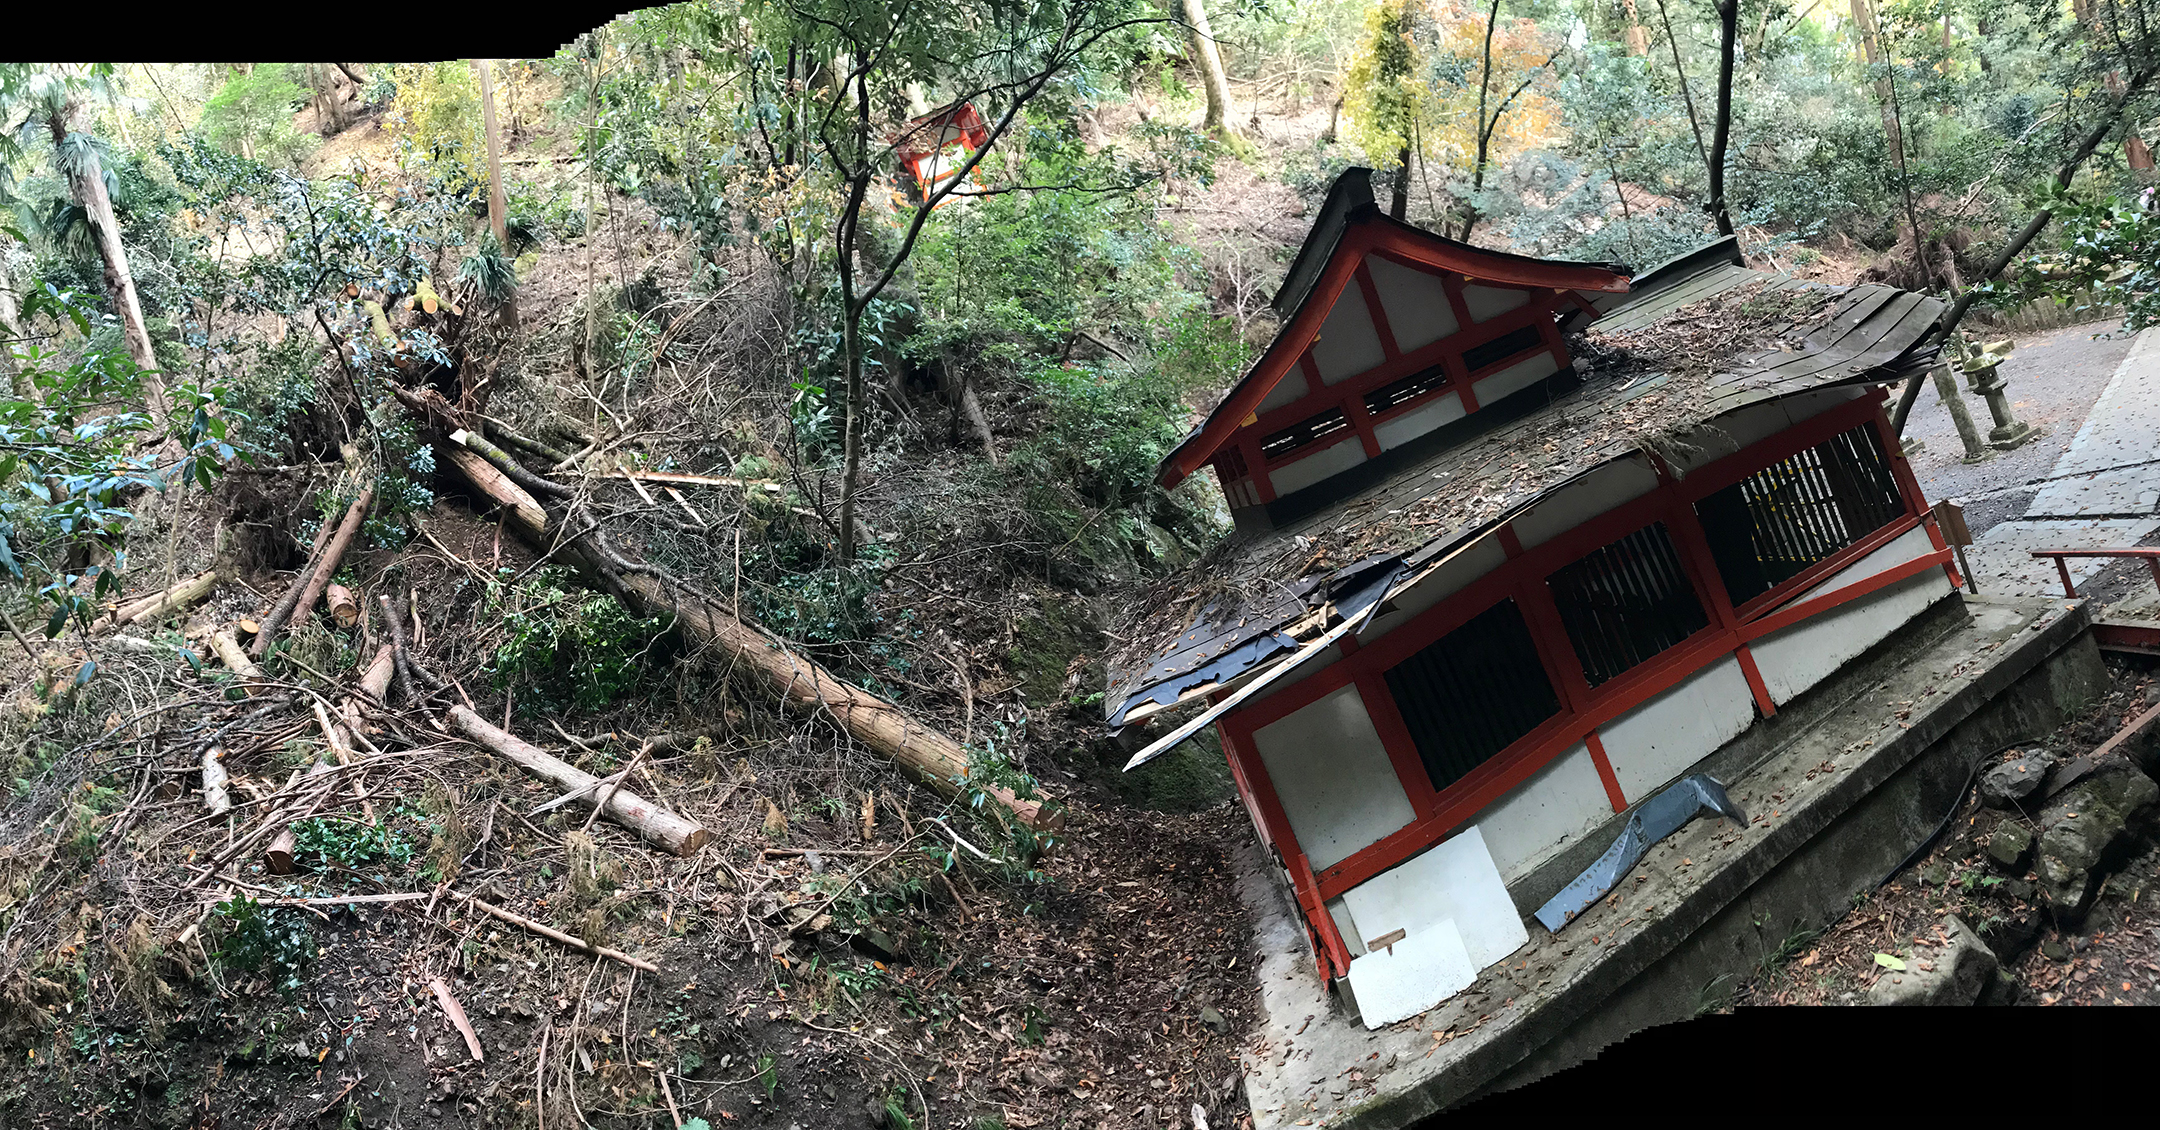 A panoramic of the battered landscape of Kurama-dera. The water from typhoon rushed down the mountainside with violent force creating an avalanche of felled trees and destroyed ancient shrines that are such an important part of the cultural heritage of Kyoto.